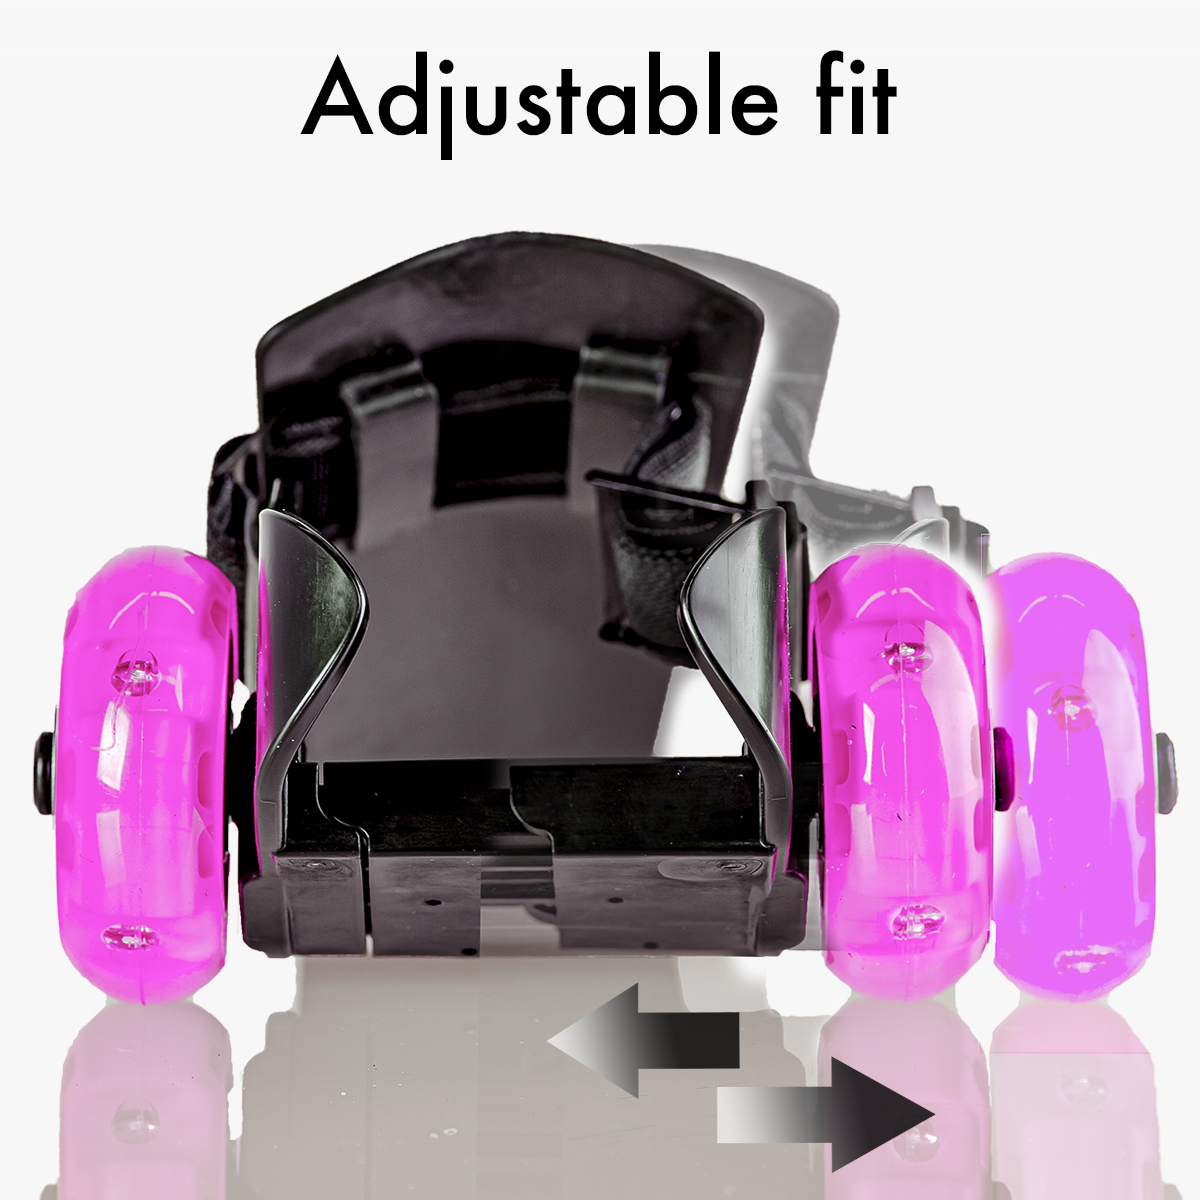 Fully adjustable to fit most shoes